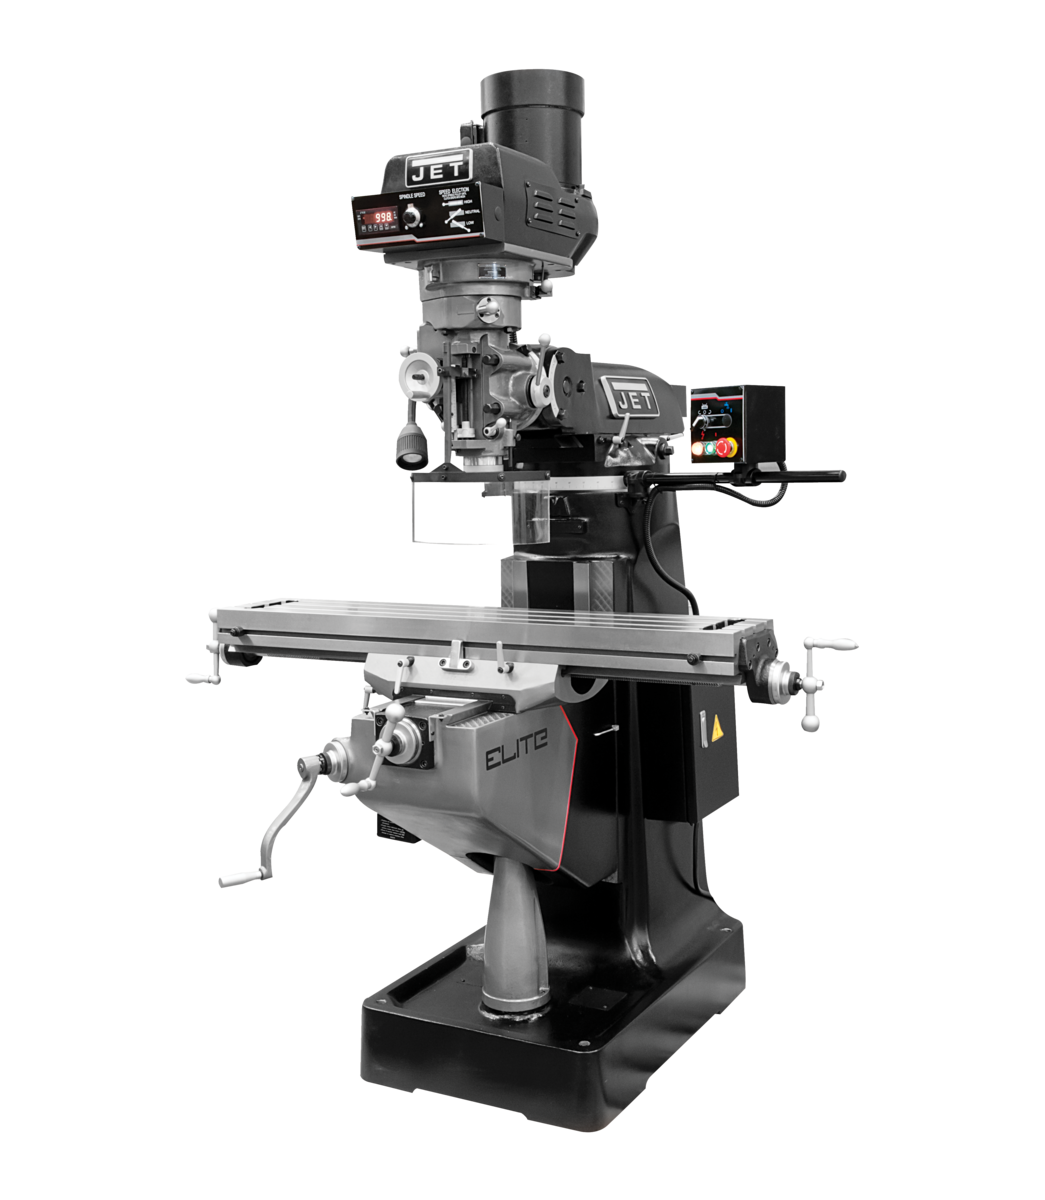 EVS-949 Mill with 3-Axis ACU-RITE 203 (Knee) DRO and X, Y, Z-Axis JET Powerfeeds